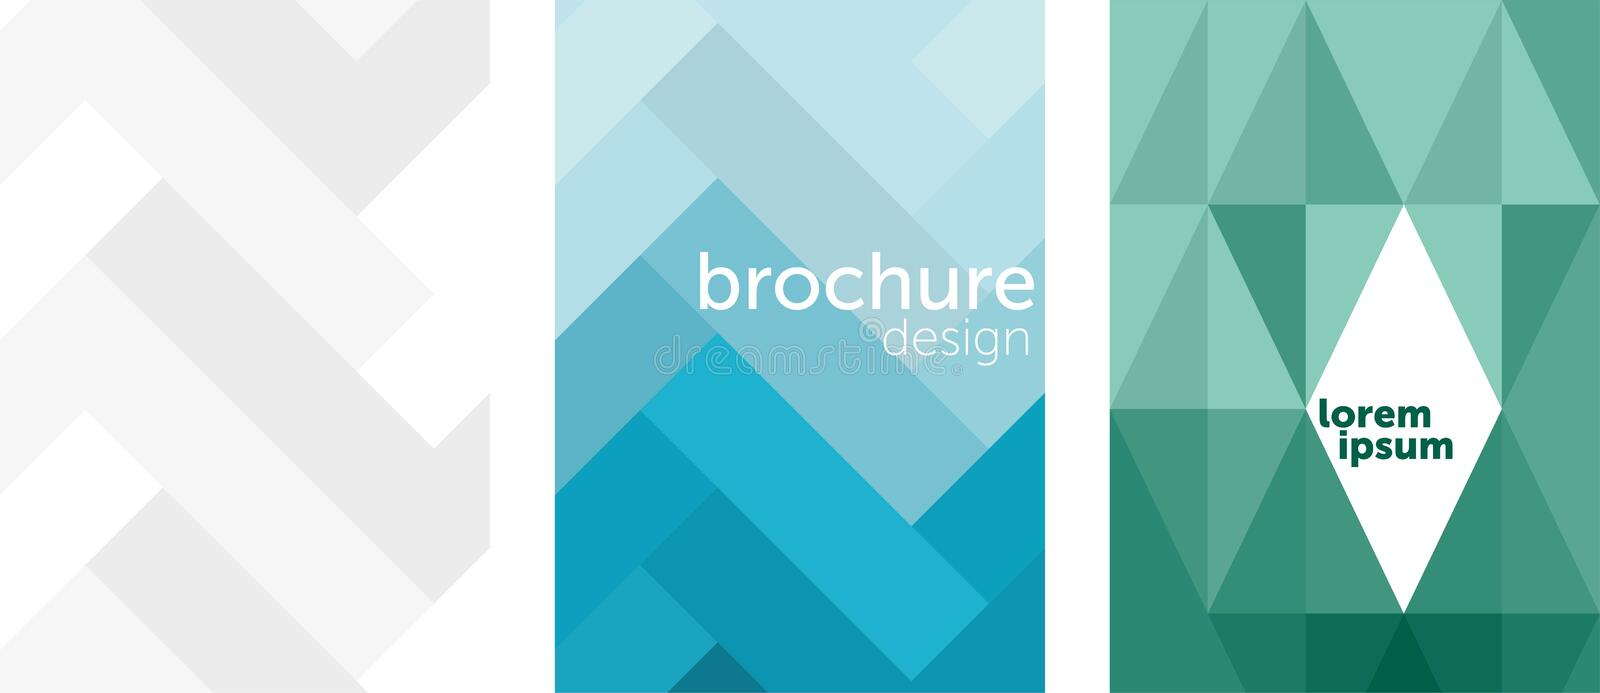 Triangle polygonal abstract background. Colorful gradient design. Low poly shape banner. Vector illustration stock illustration